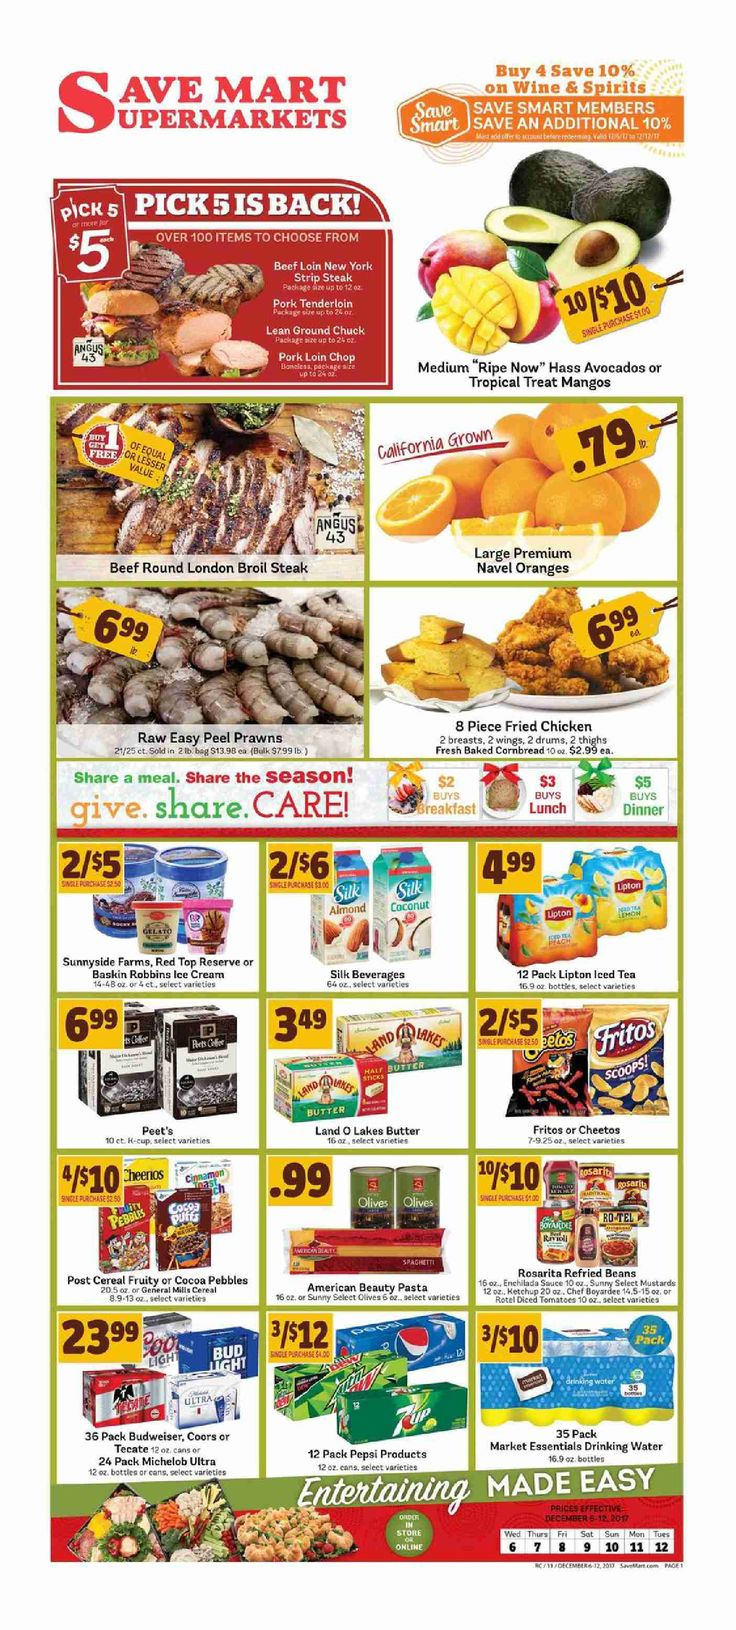 Save Mart Weekly ad December 6 - 12, 2017 - http://www.olcatalog.com/save-mart/save-mart-weekly-ad.html